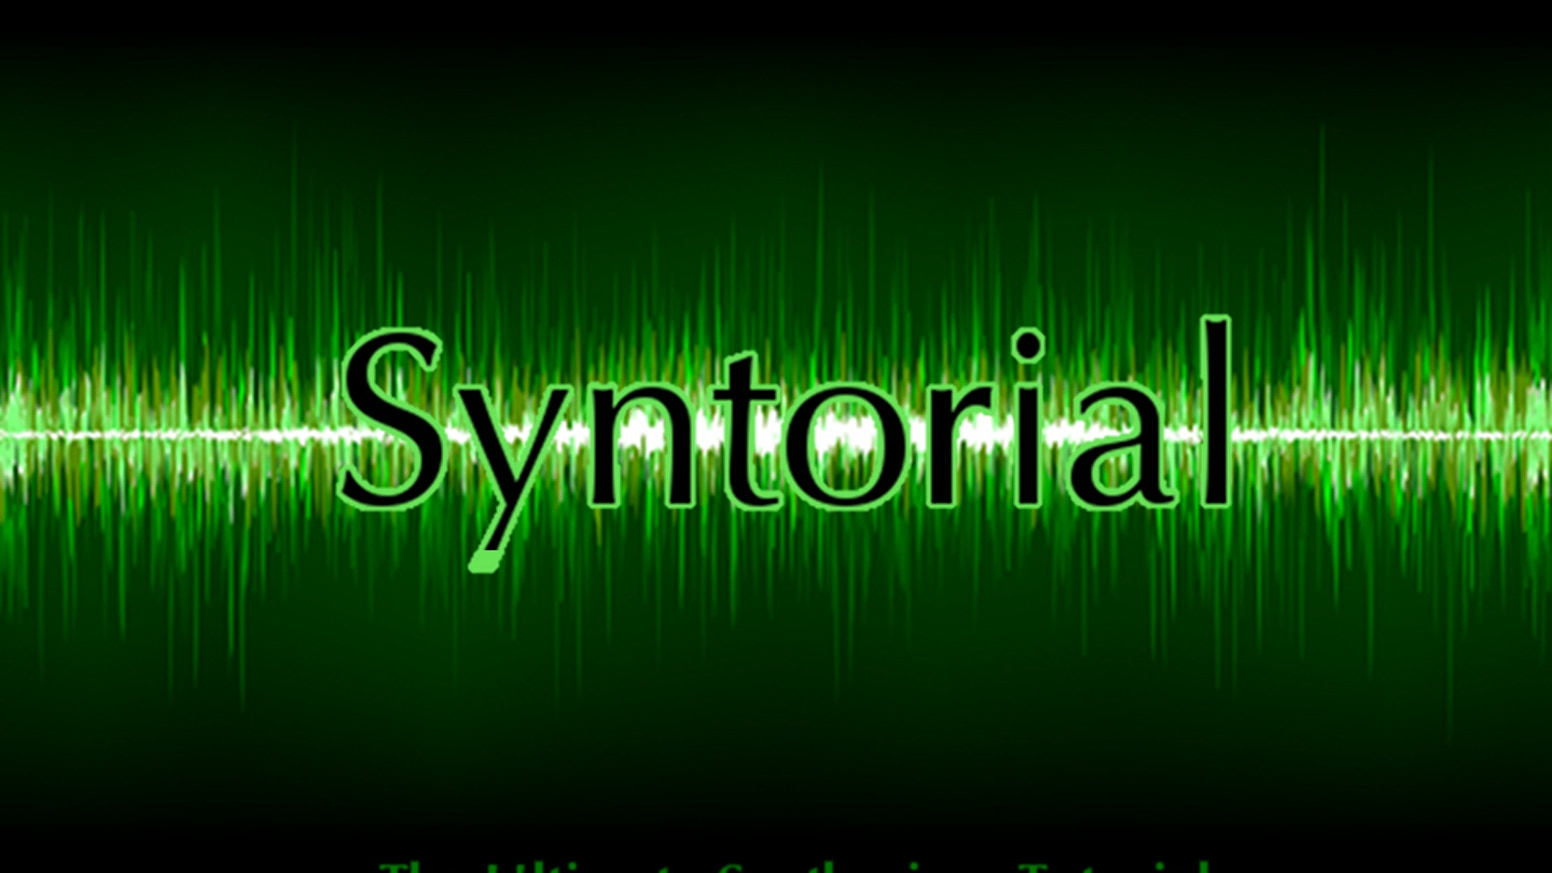 Syntorial: The Ultimate Synthesizer Tutorial by Joe Hanley